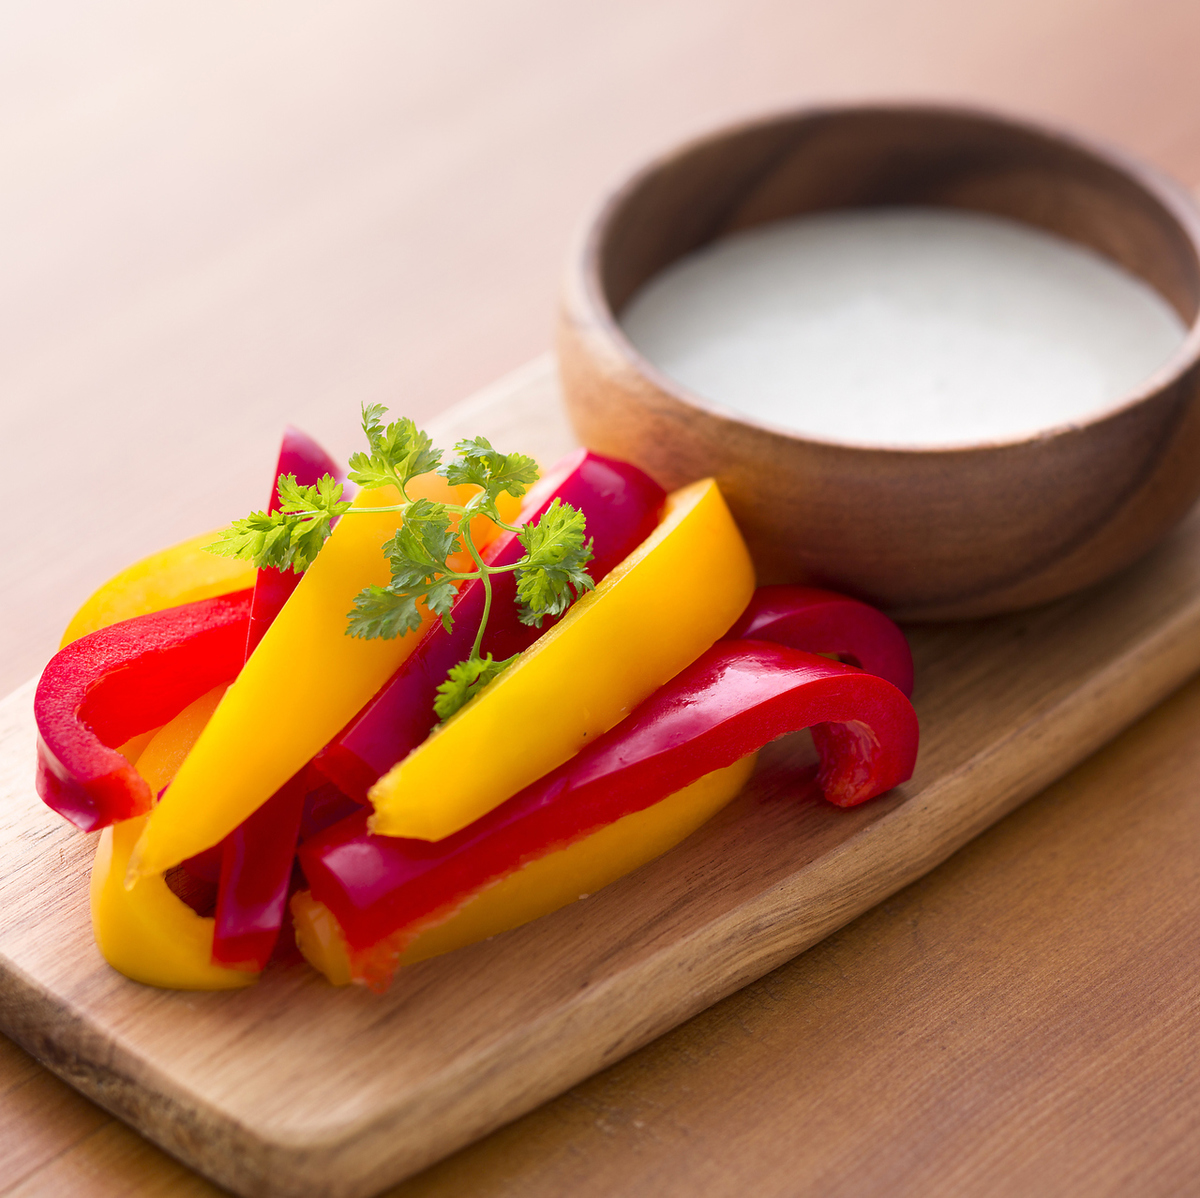 Bagna cauda with Kuroshio town of paprika